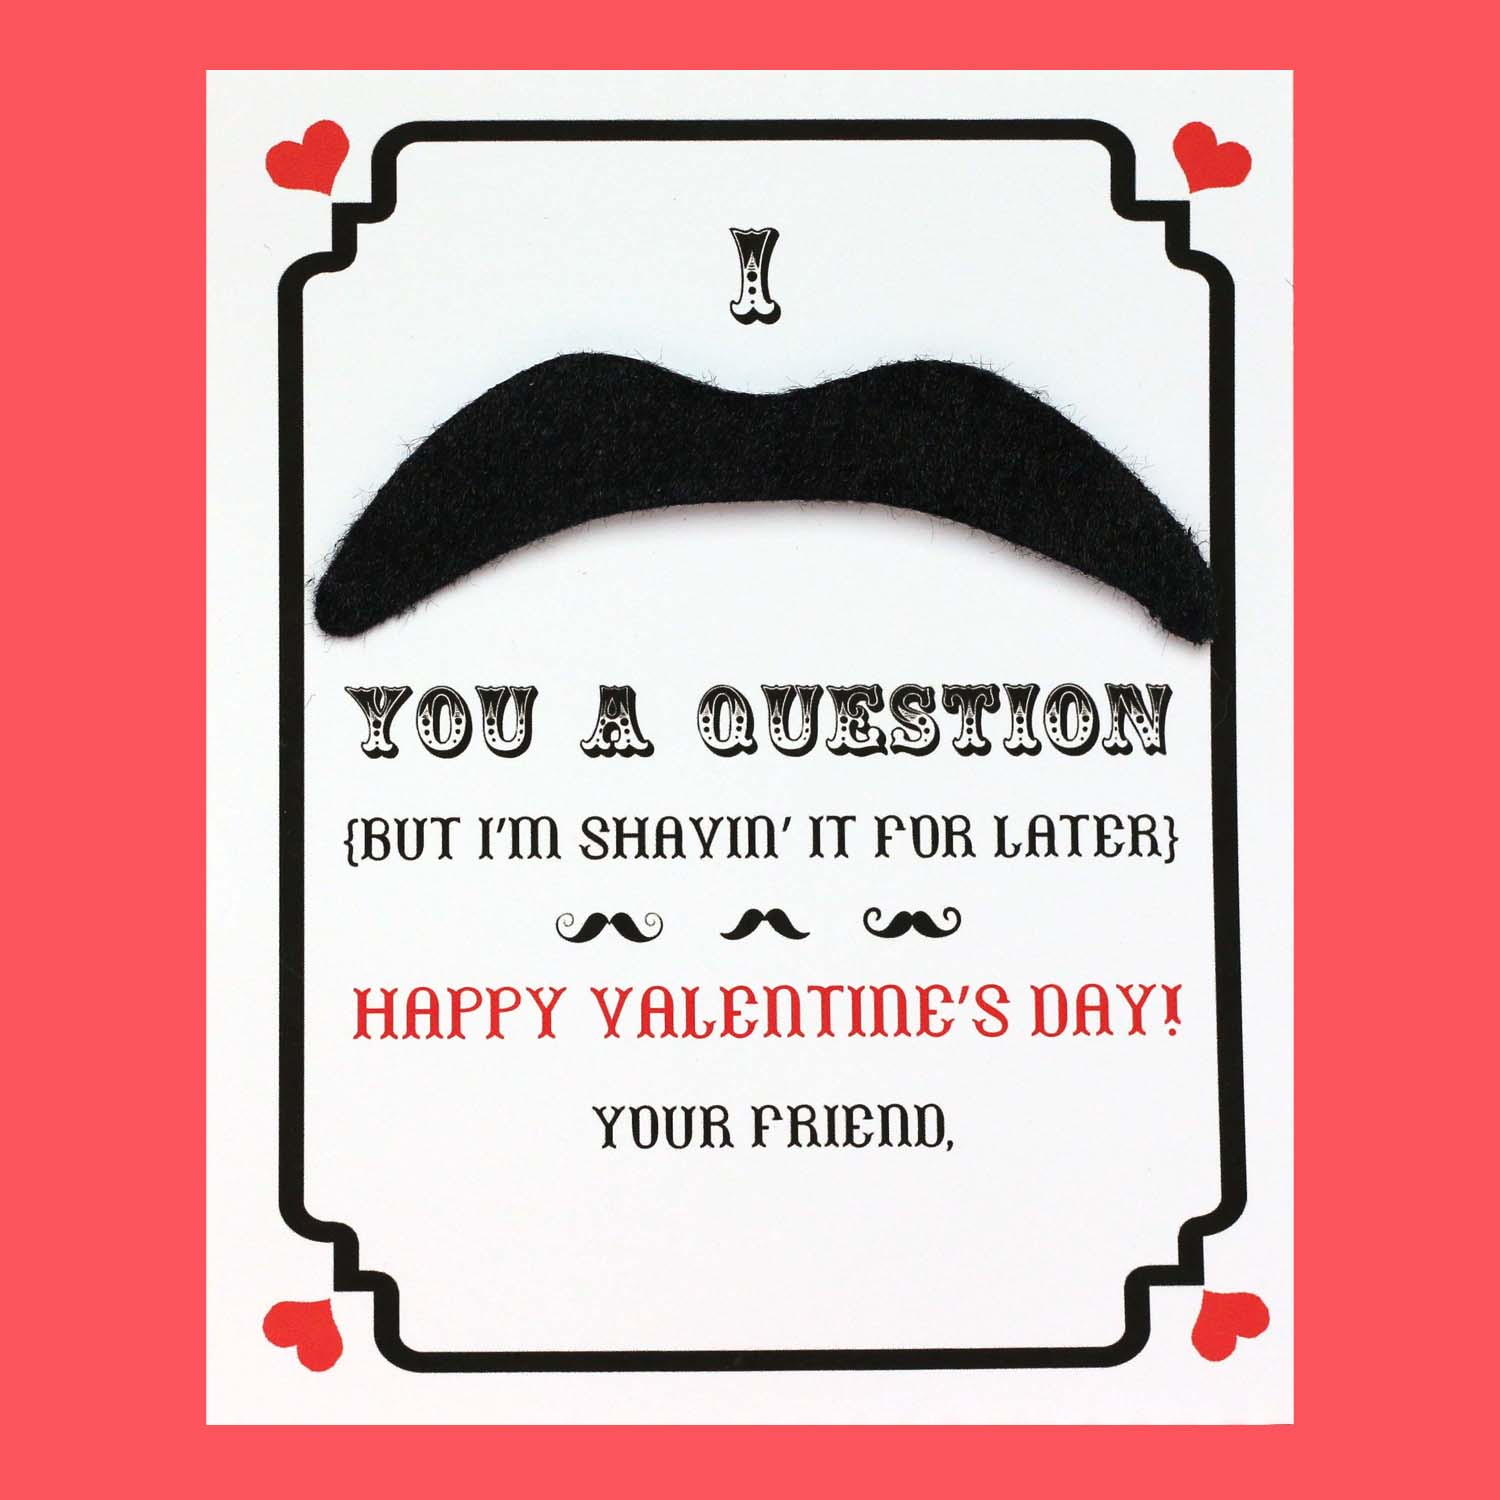 Make Mustache Valentines Day Cards Free Printable – Mustache Valentine Cards